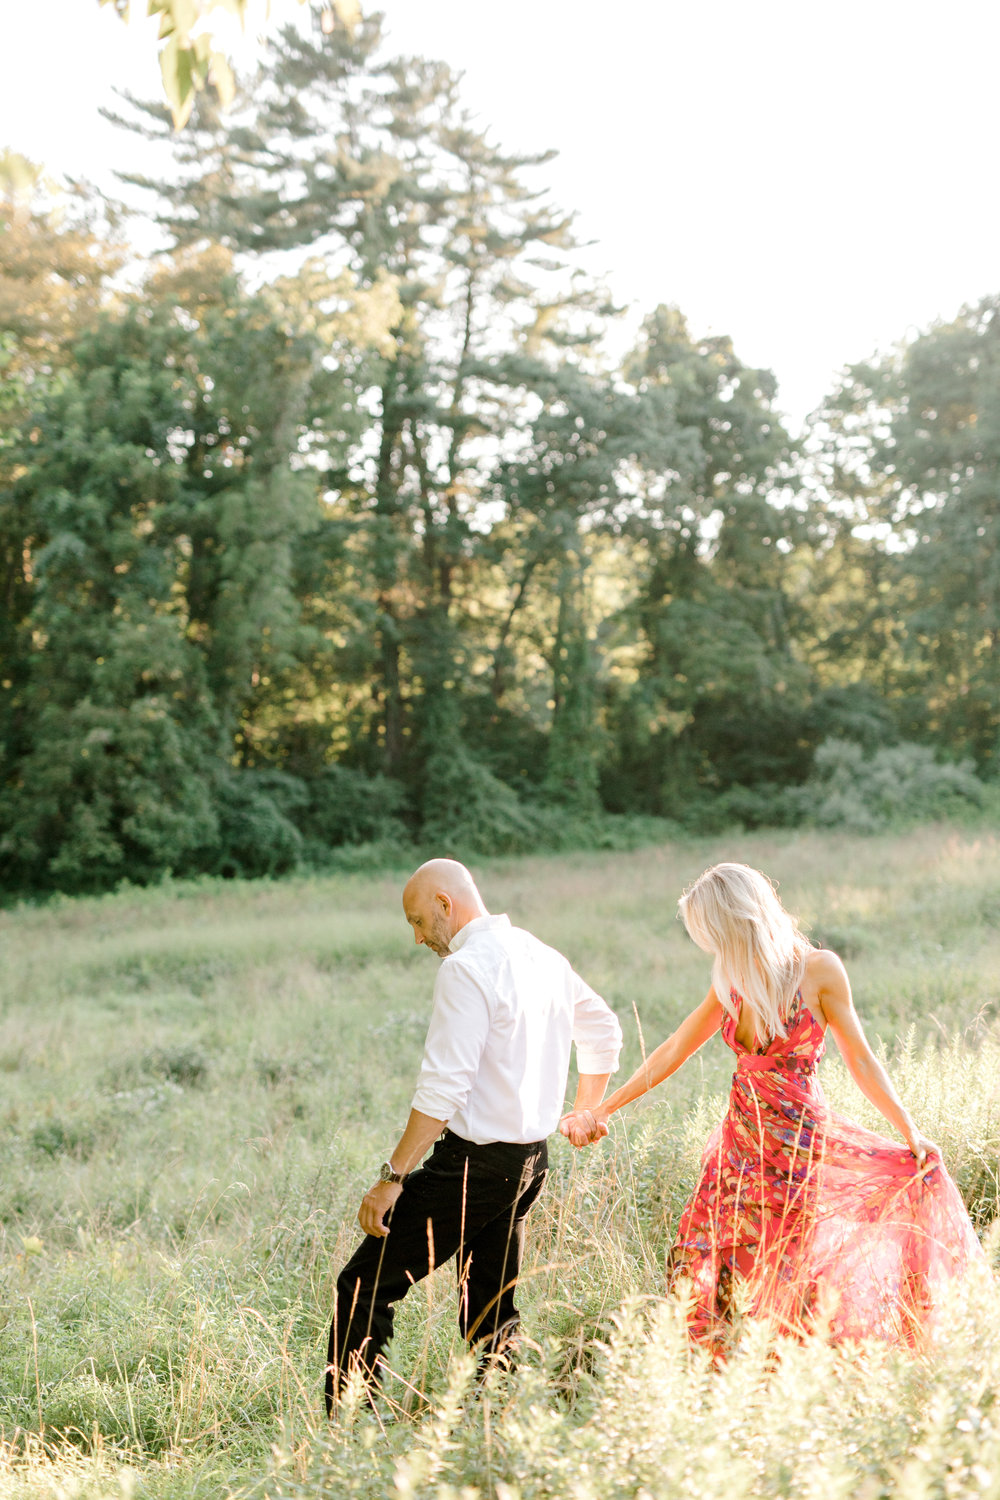 Bill leads Liz into a glowing sunlit field in an intimate moment for their romantic sunset woodland engagement session at Parque at Ridley Creek